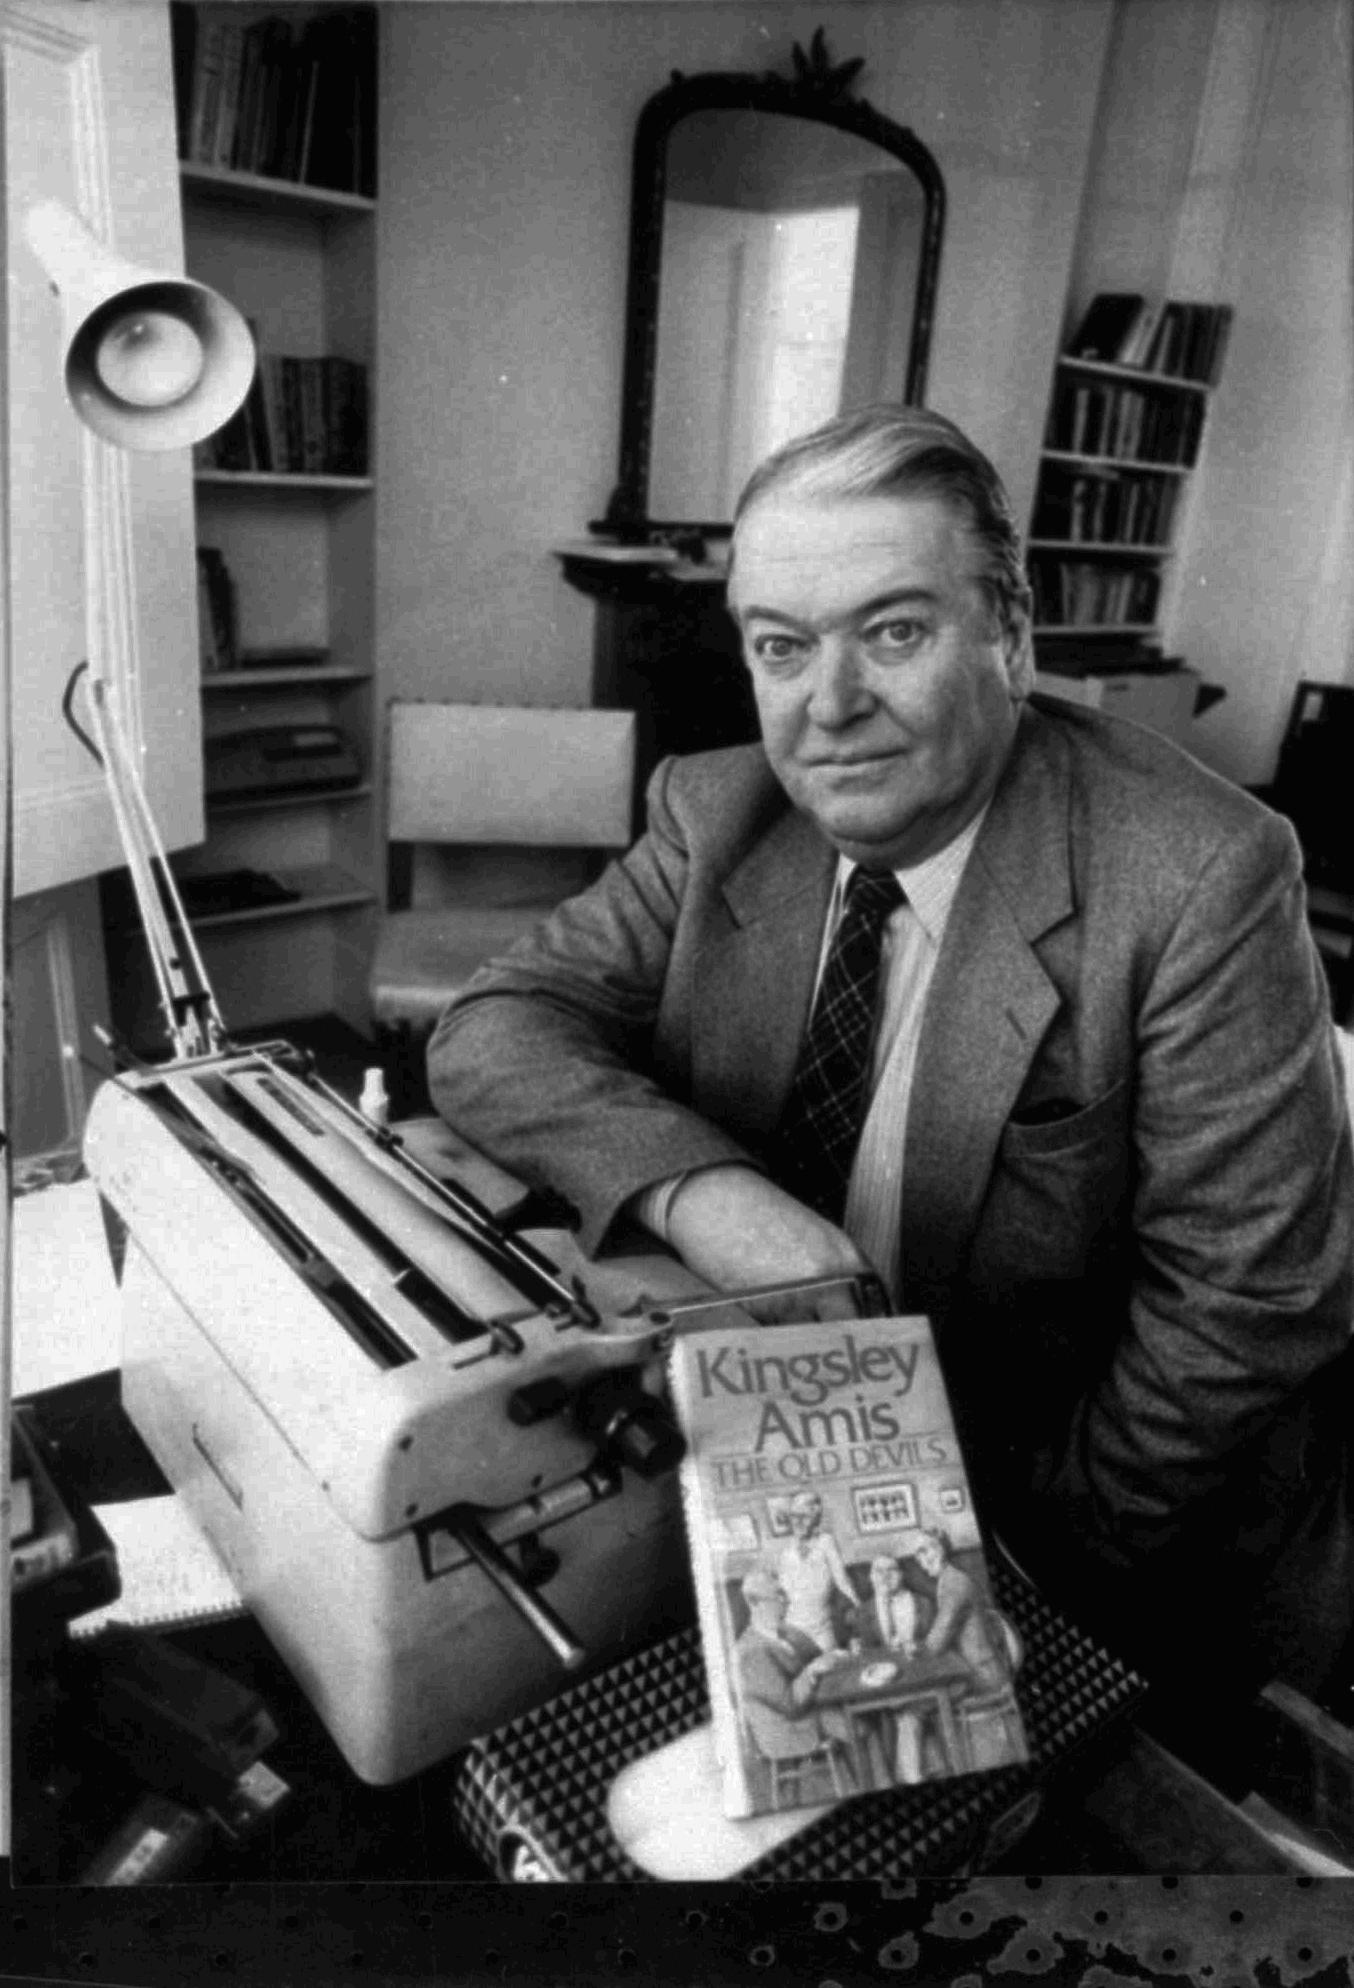 Kingsley Amis Biography - Kingsley Amis Childhood, Kingsley Amis ...